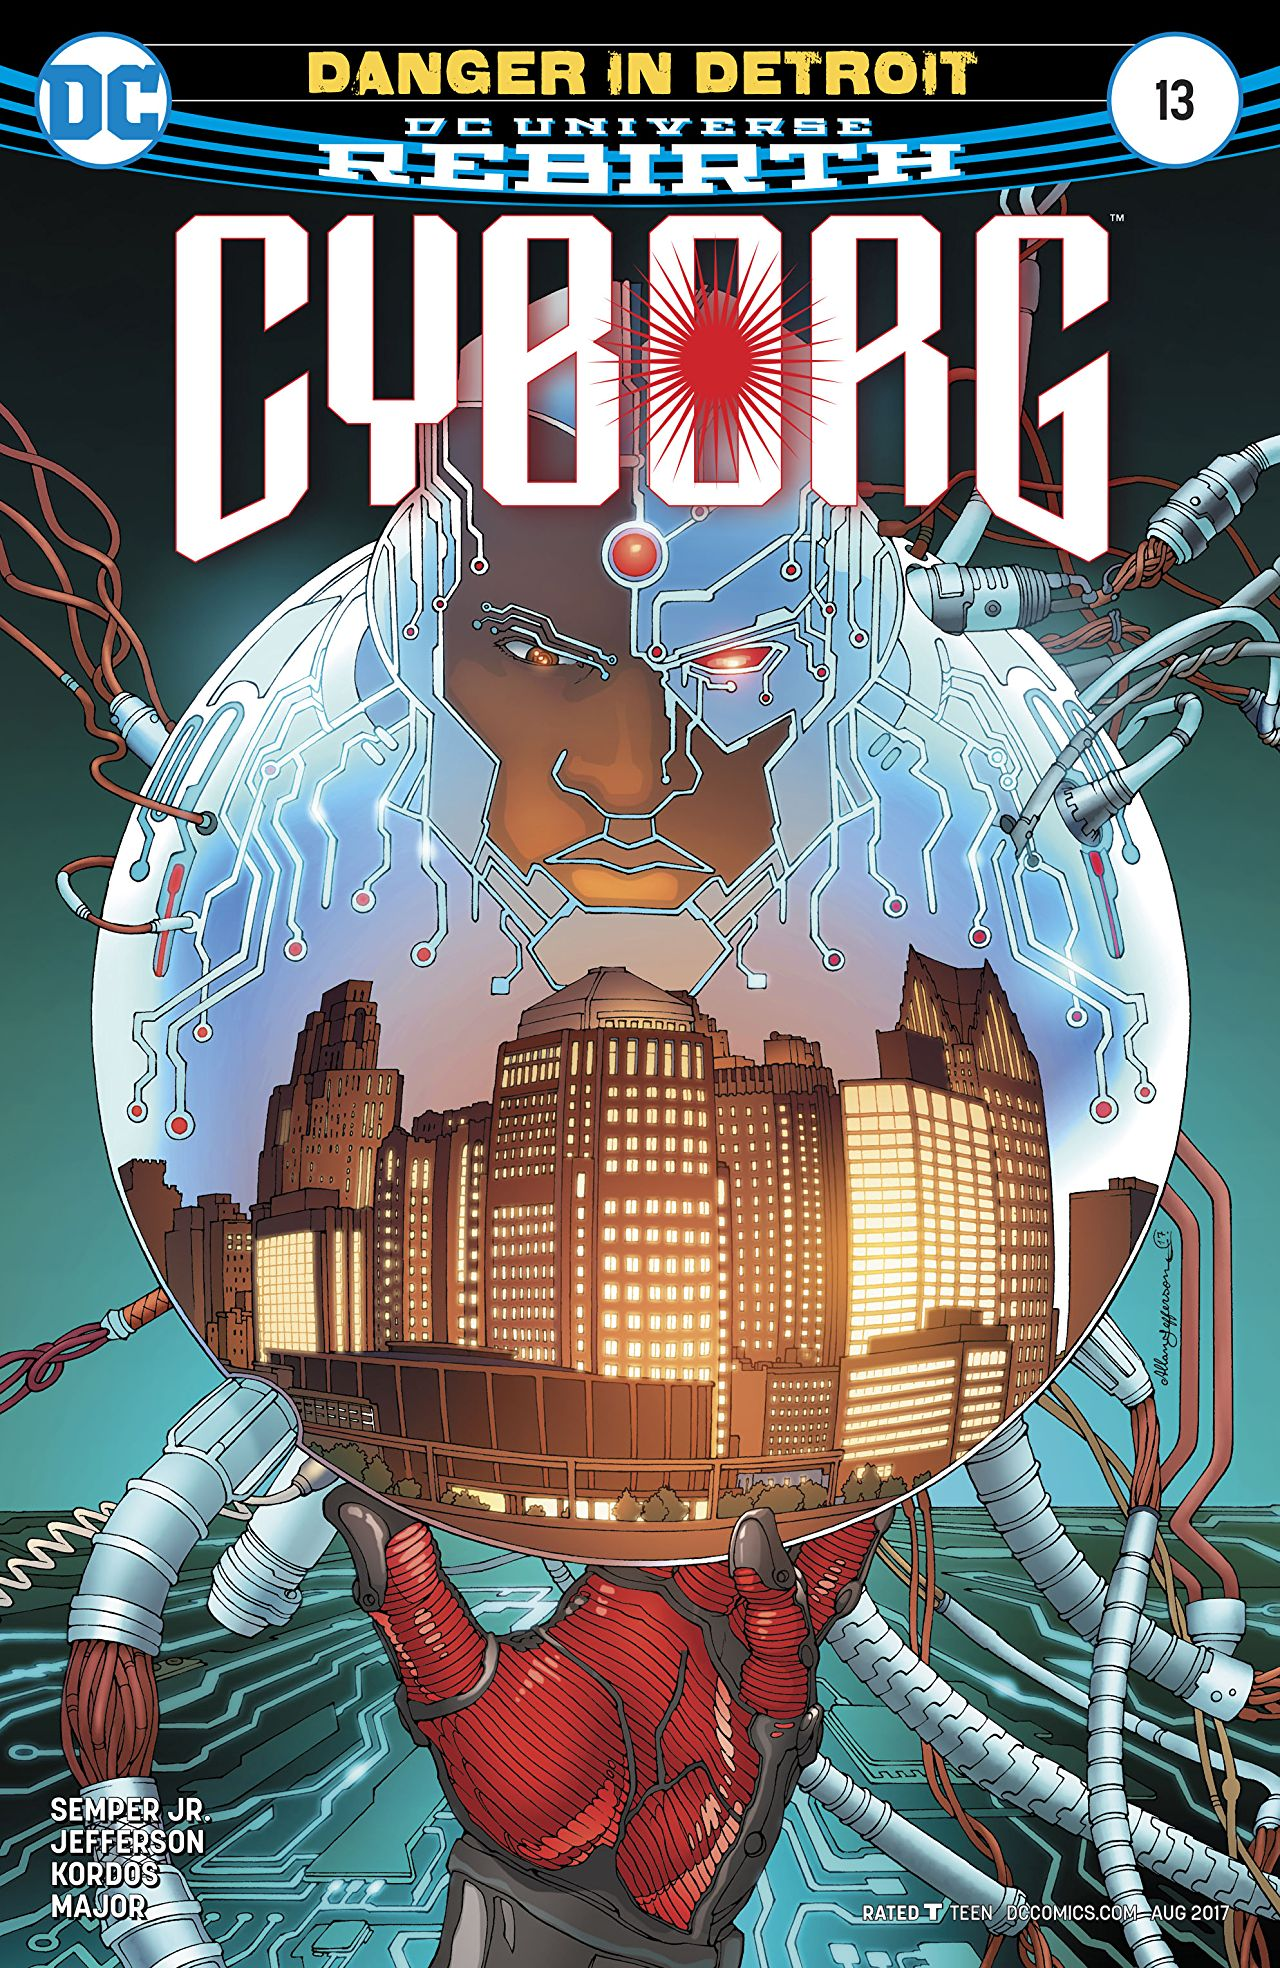 review CYBORG #13